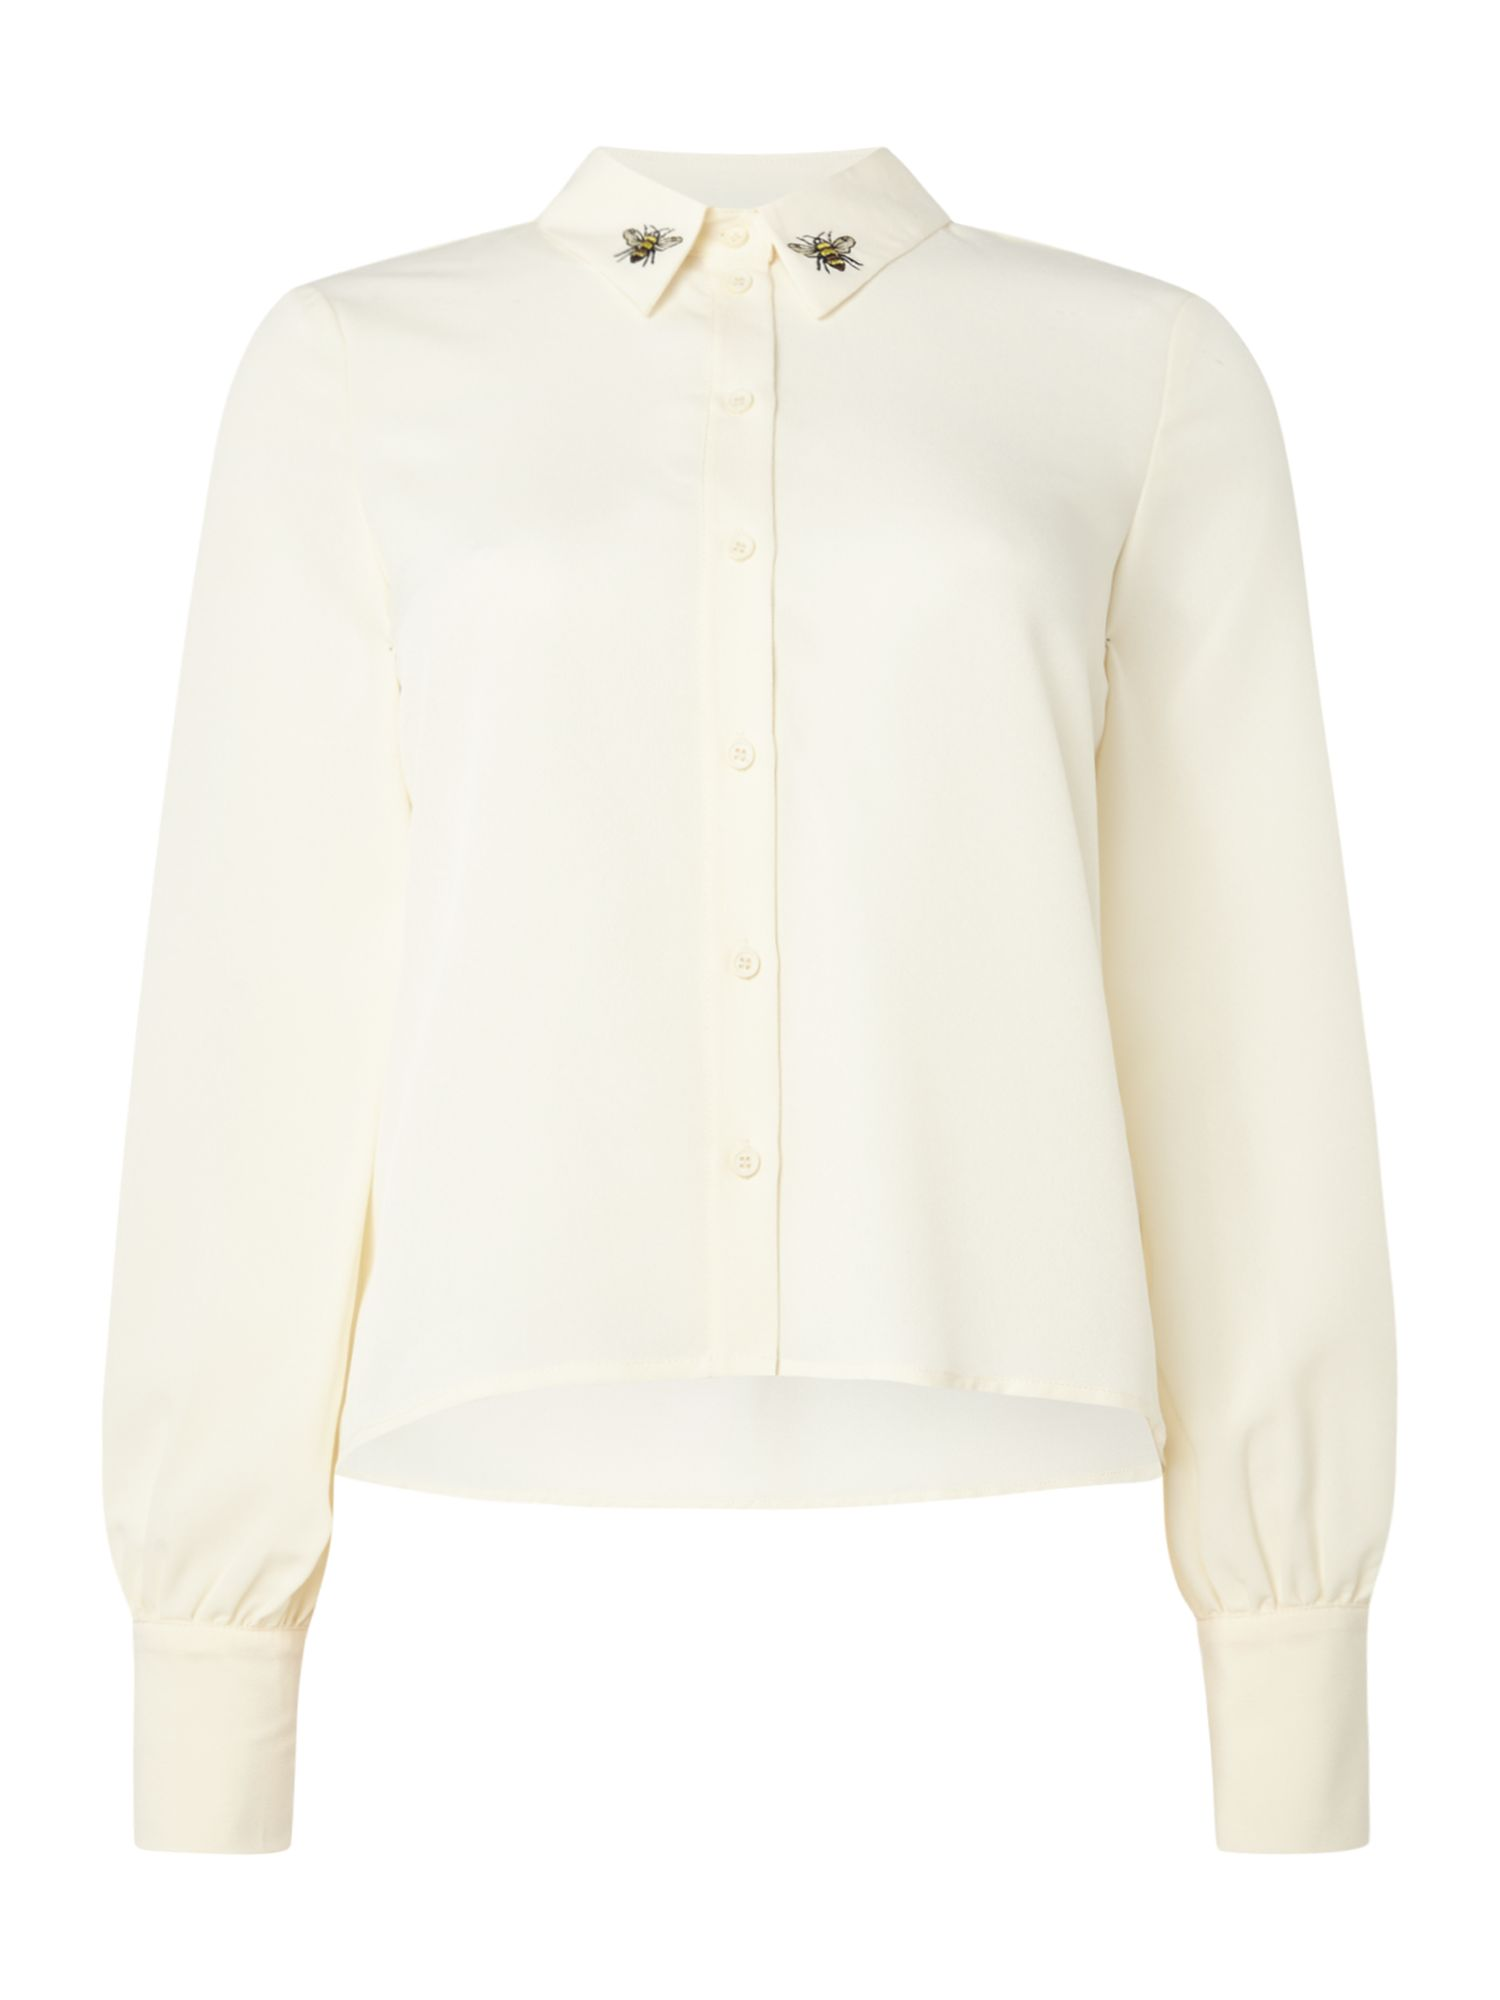 Vero Moda Long sleeves shirt with collar detail, Winter White